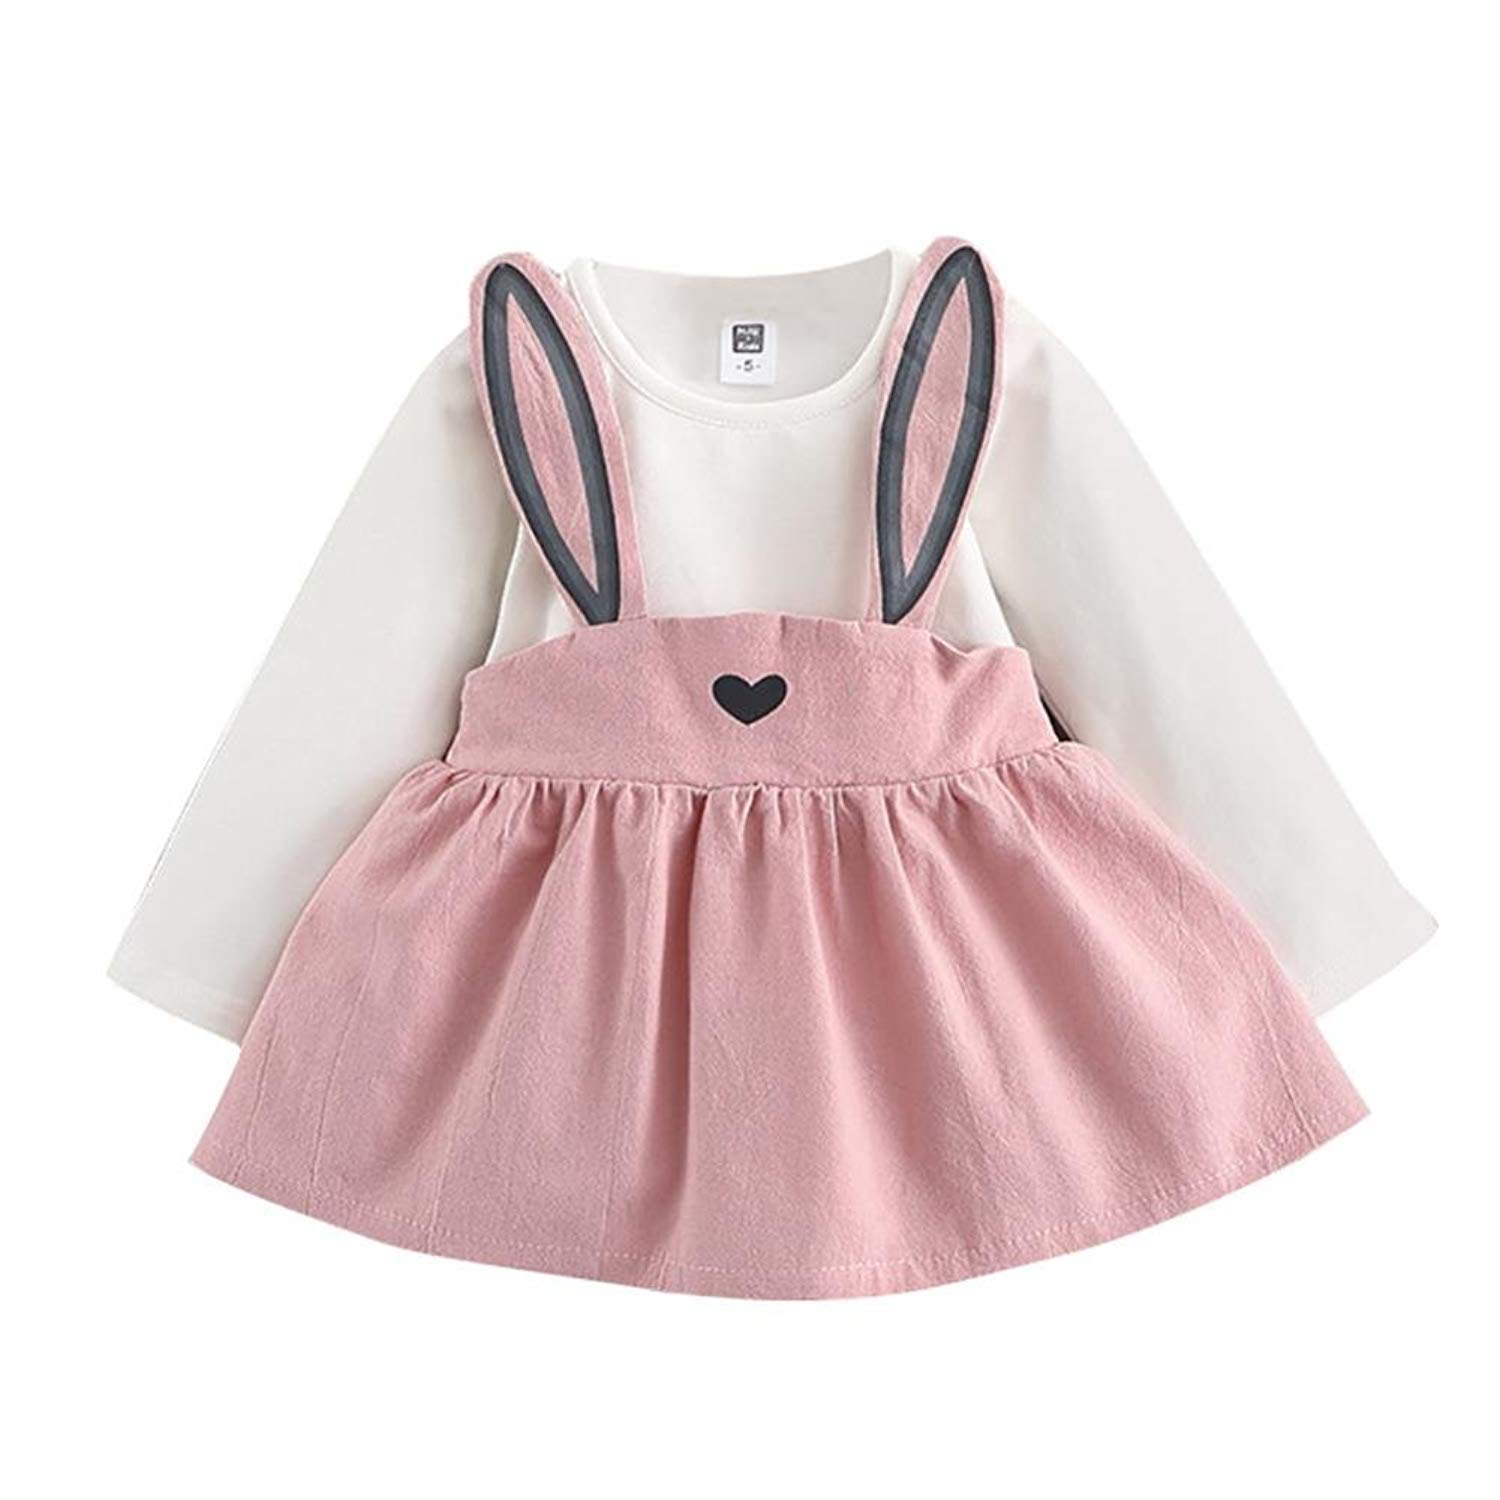 0f44b0cf7 Amazon.com  0-3 Years Toddler Baby Girls Autumn Mini Princess ...